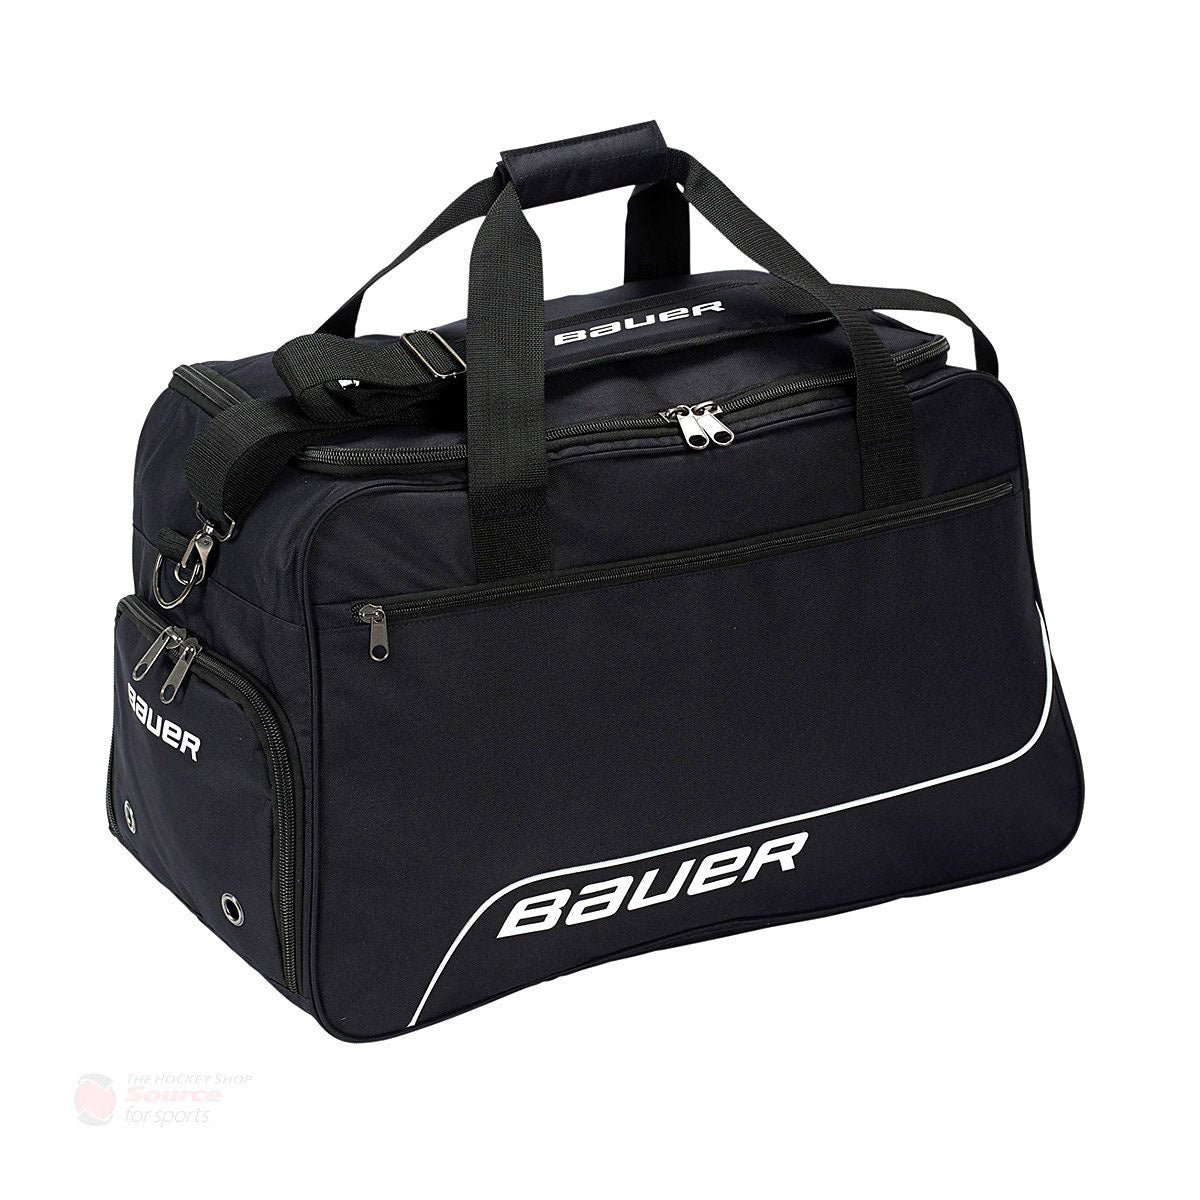 Bauer Referee Bag